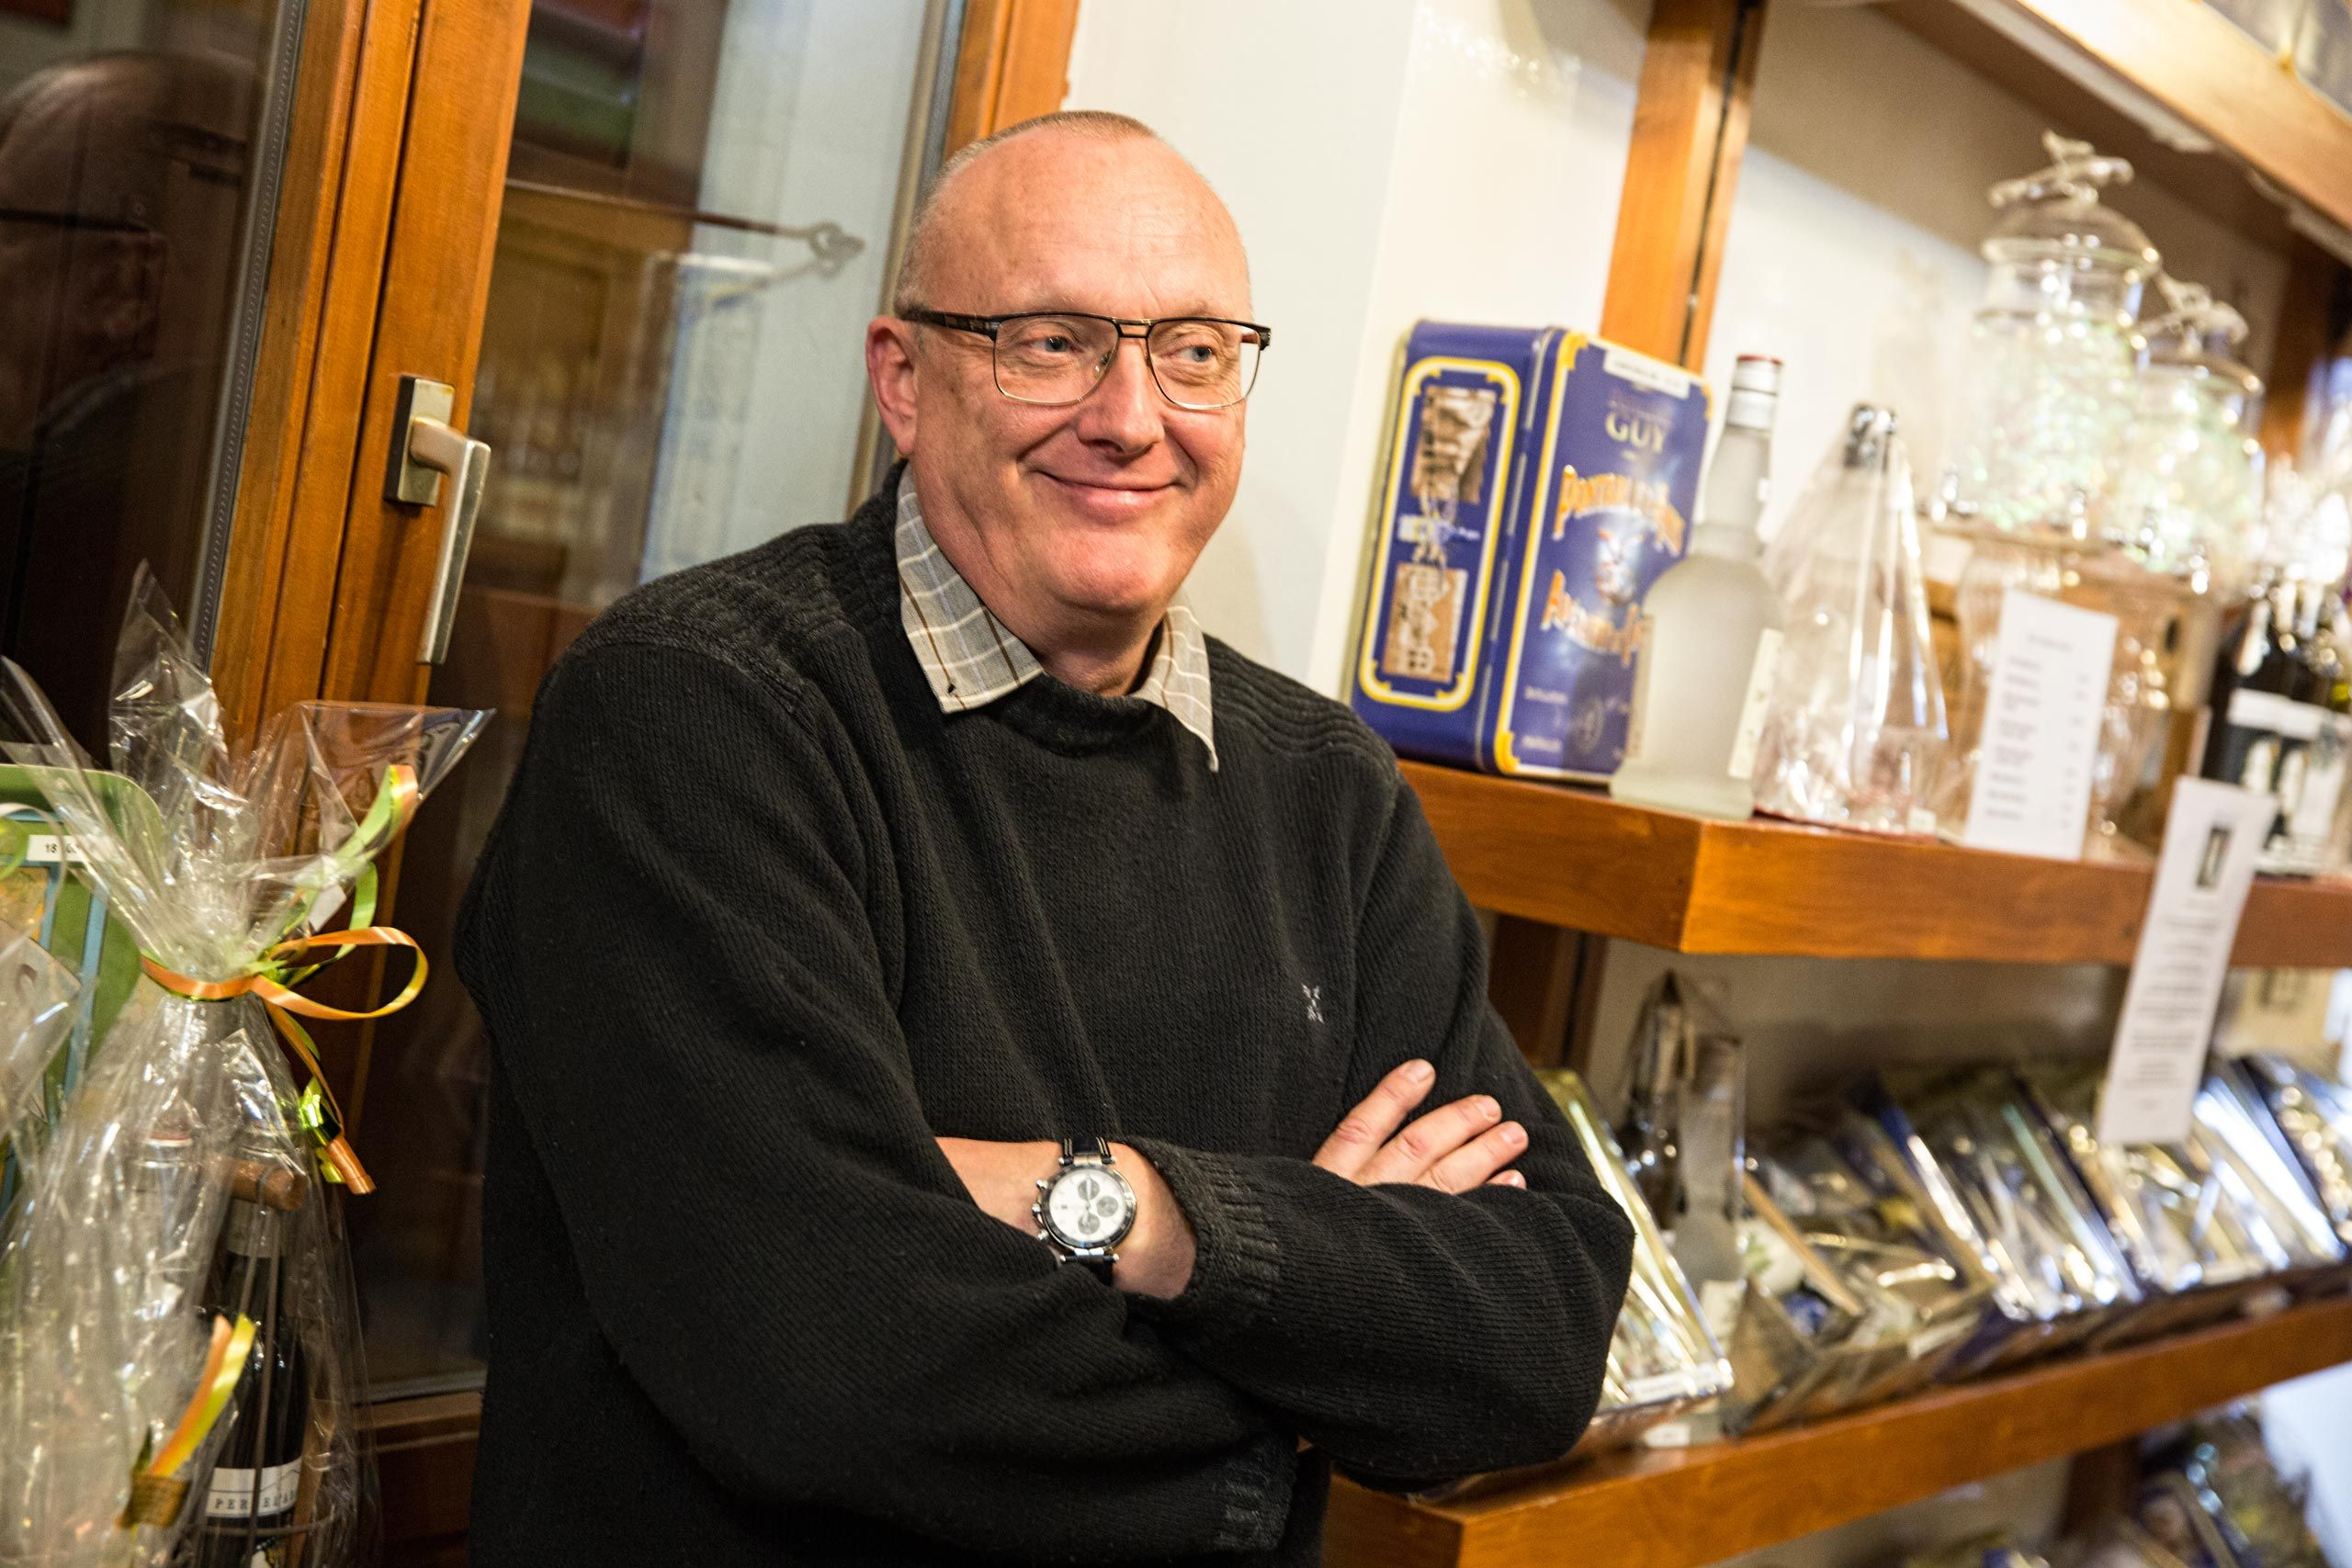 Owner of Distillery Armand Guy